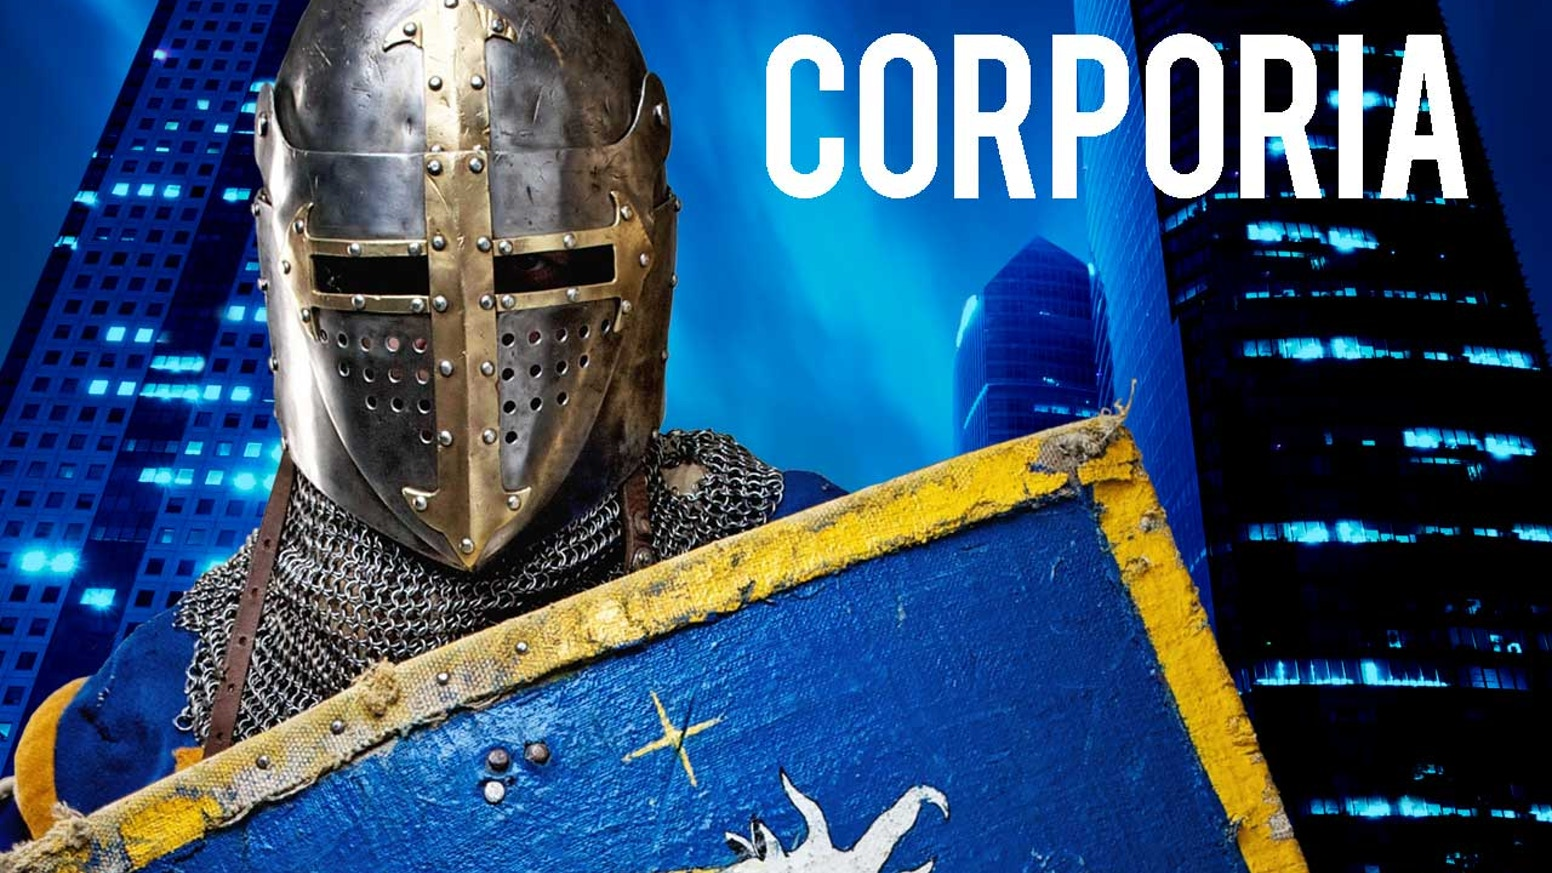 Corporia is an urban fantasy RPG from award-winning writer Mark Plemmons. It's suits with swords in this futuristic return of Camelot!